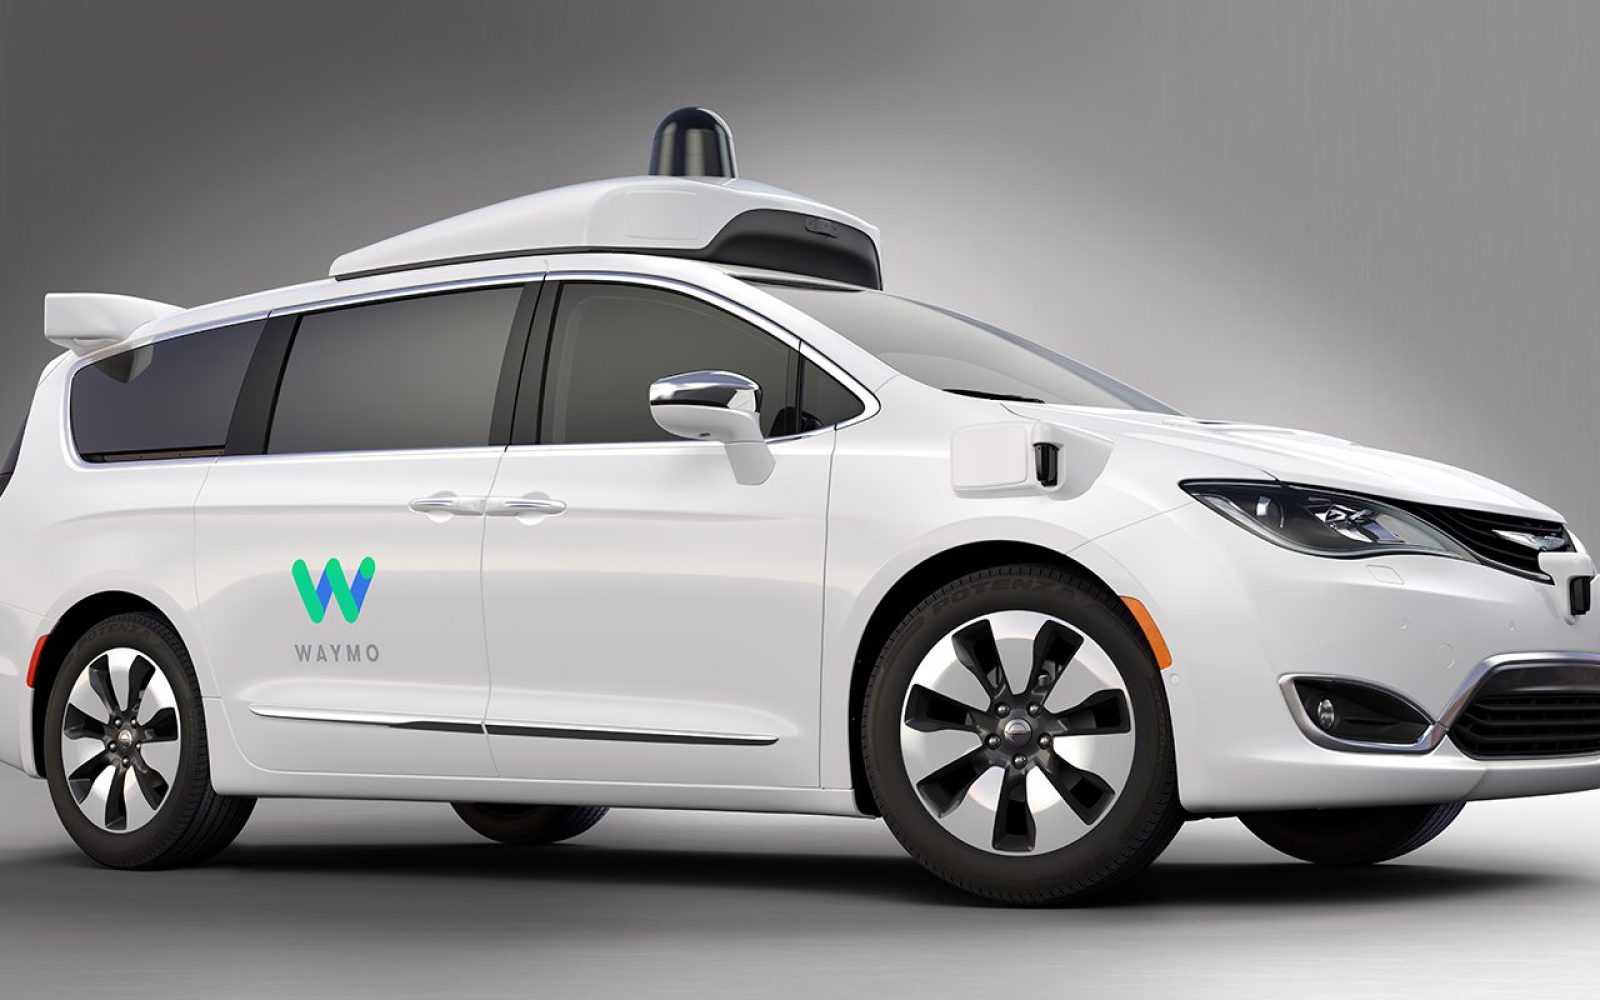 Chrysler And Waymo Unveil The Design Of First Fully Self Driving Electric Chrysler Pacifica 100 Of Them Produced For Test Fleet